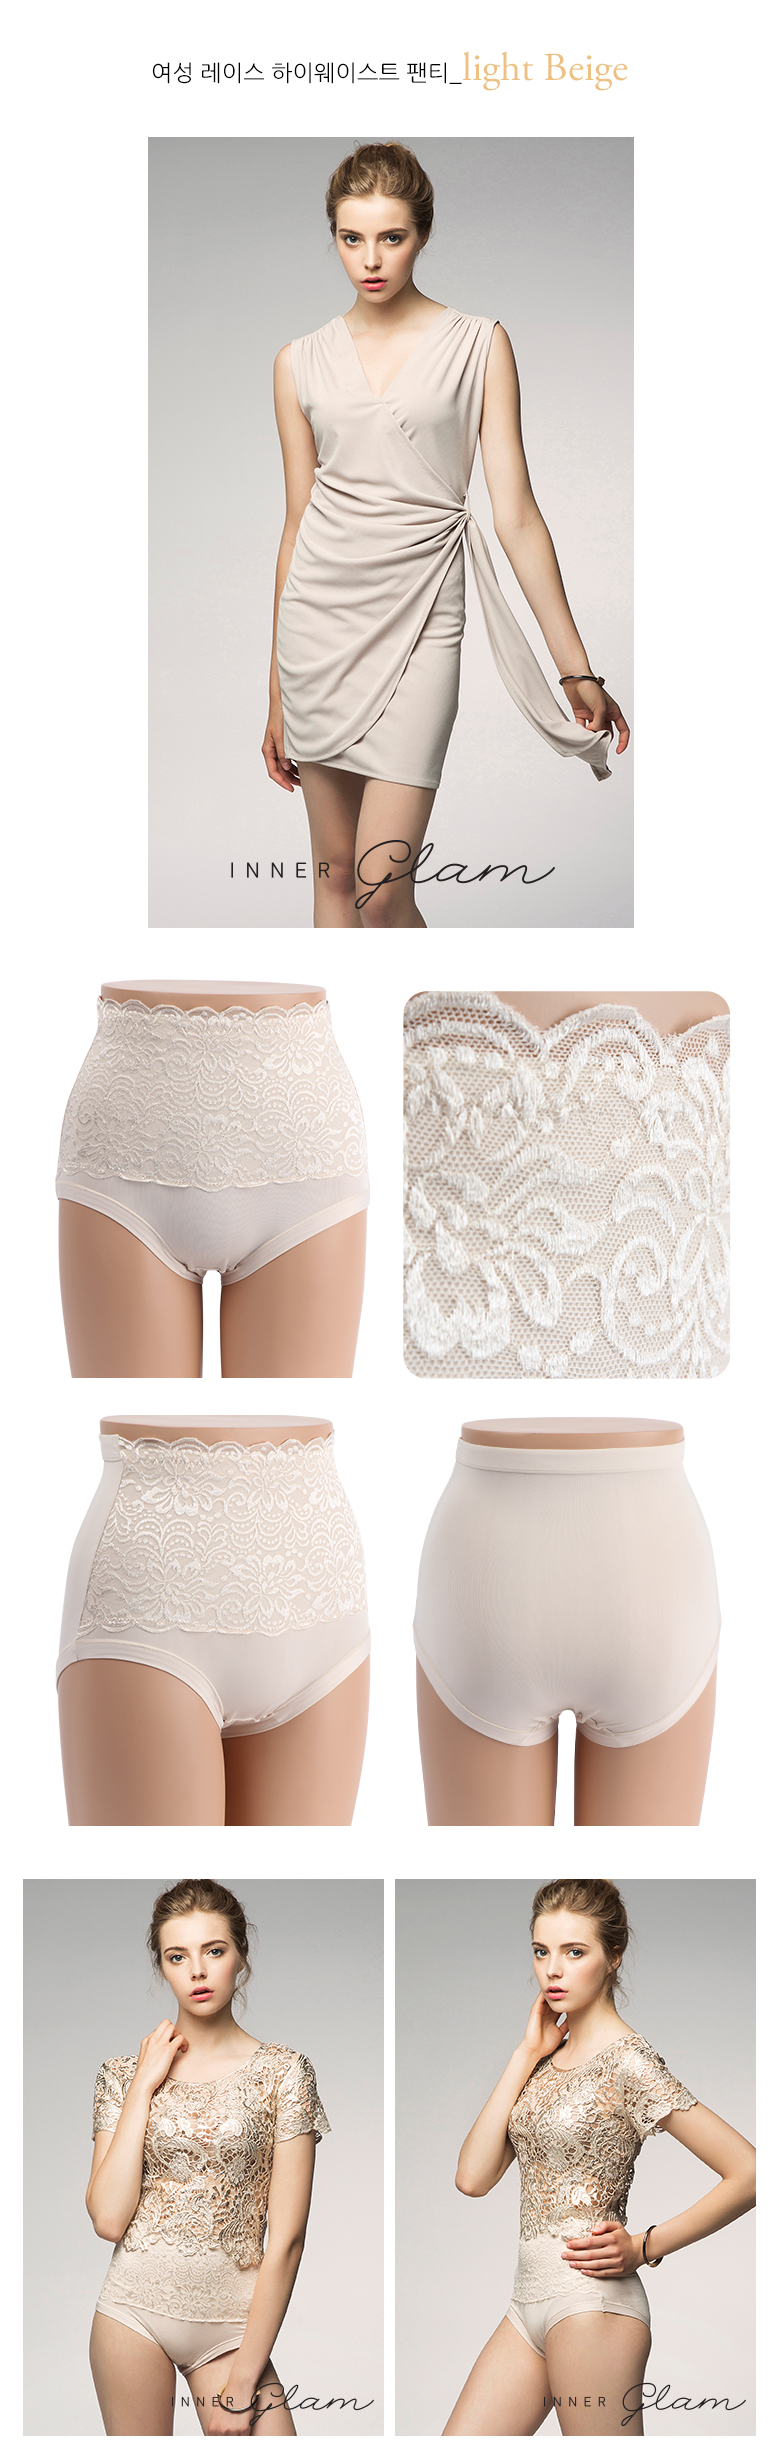 [ innerglam ] Women lace panties & rayon Bra Top Running set